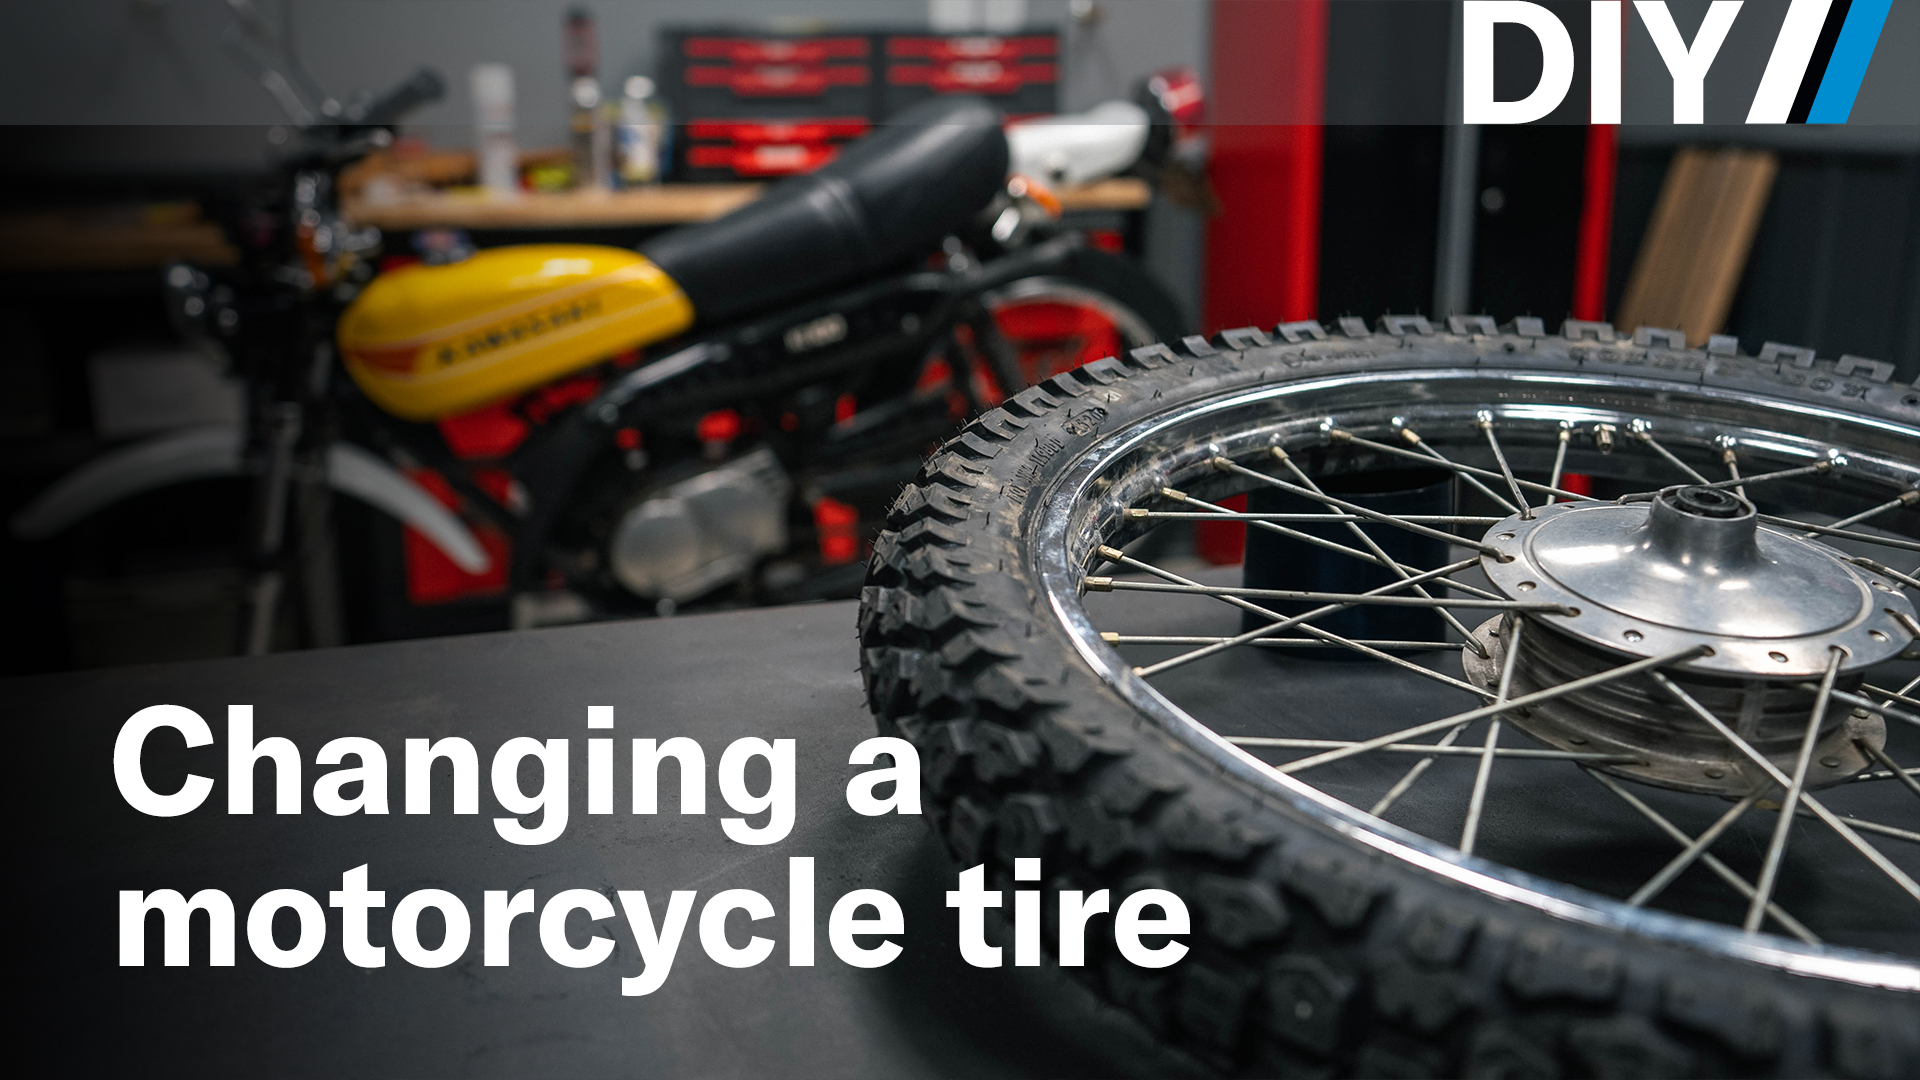 DIY changing a motorcycle tire